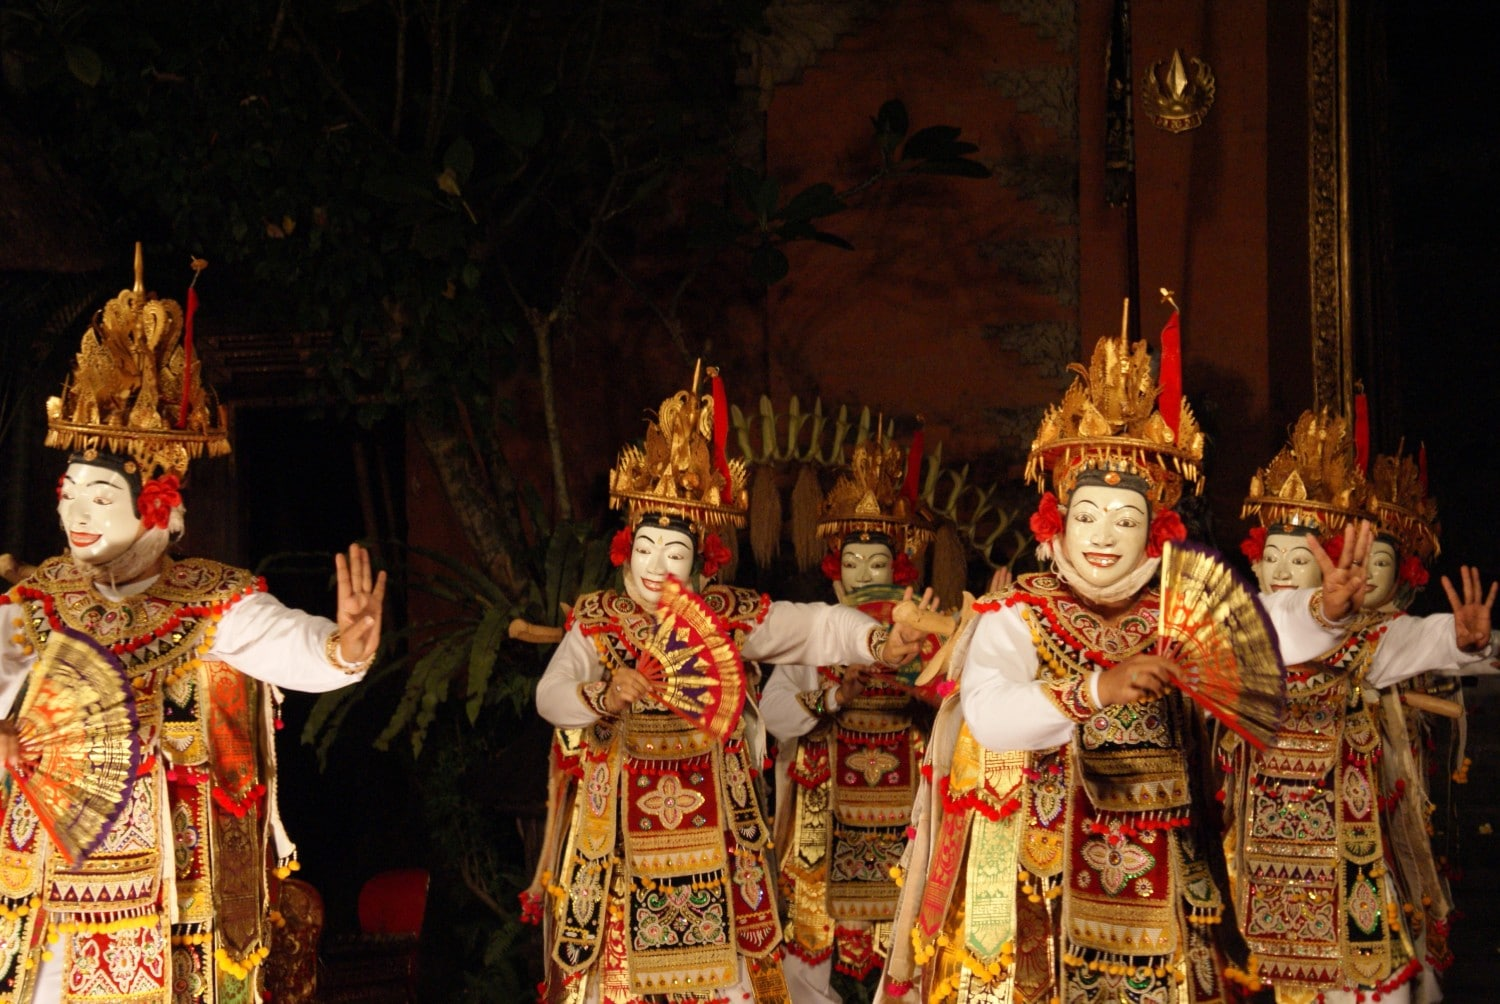 Masked dancers in Balinese Dance